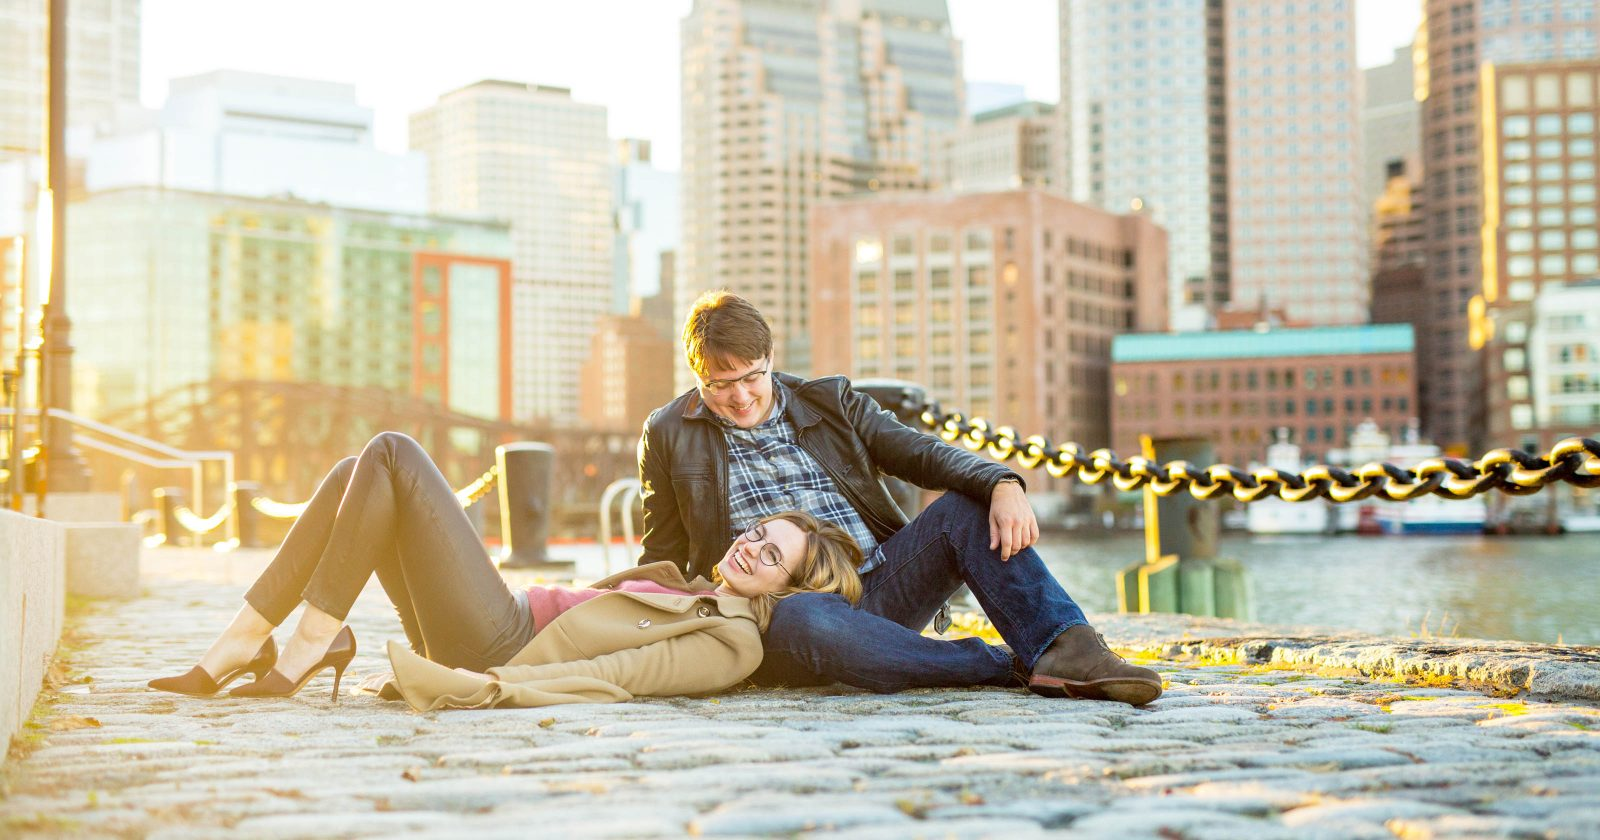 Lucy + Kevin at the Boston Seaport